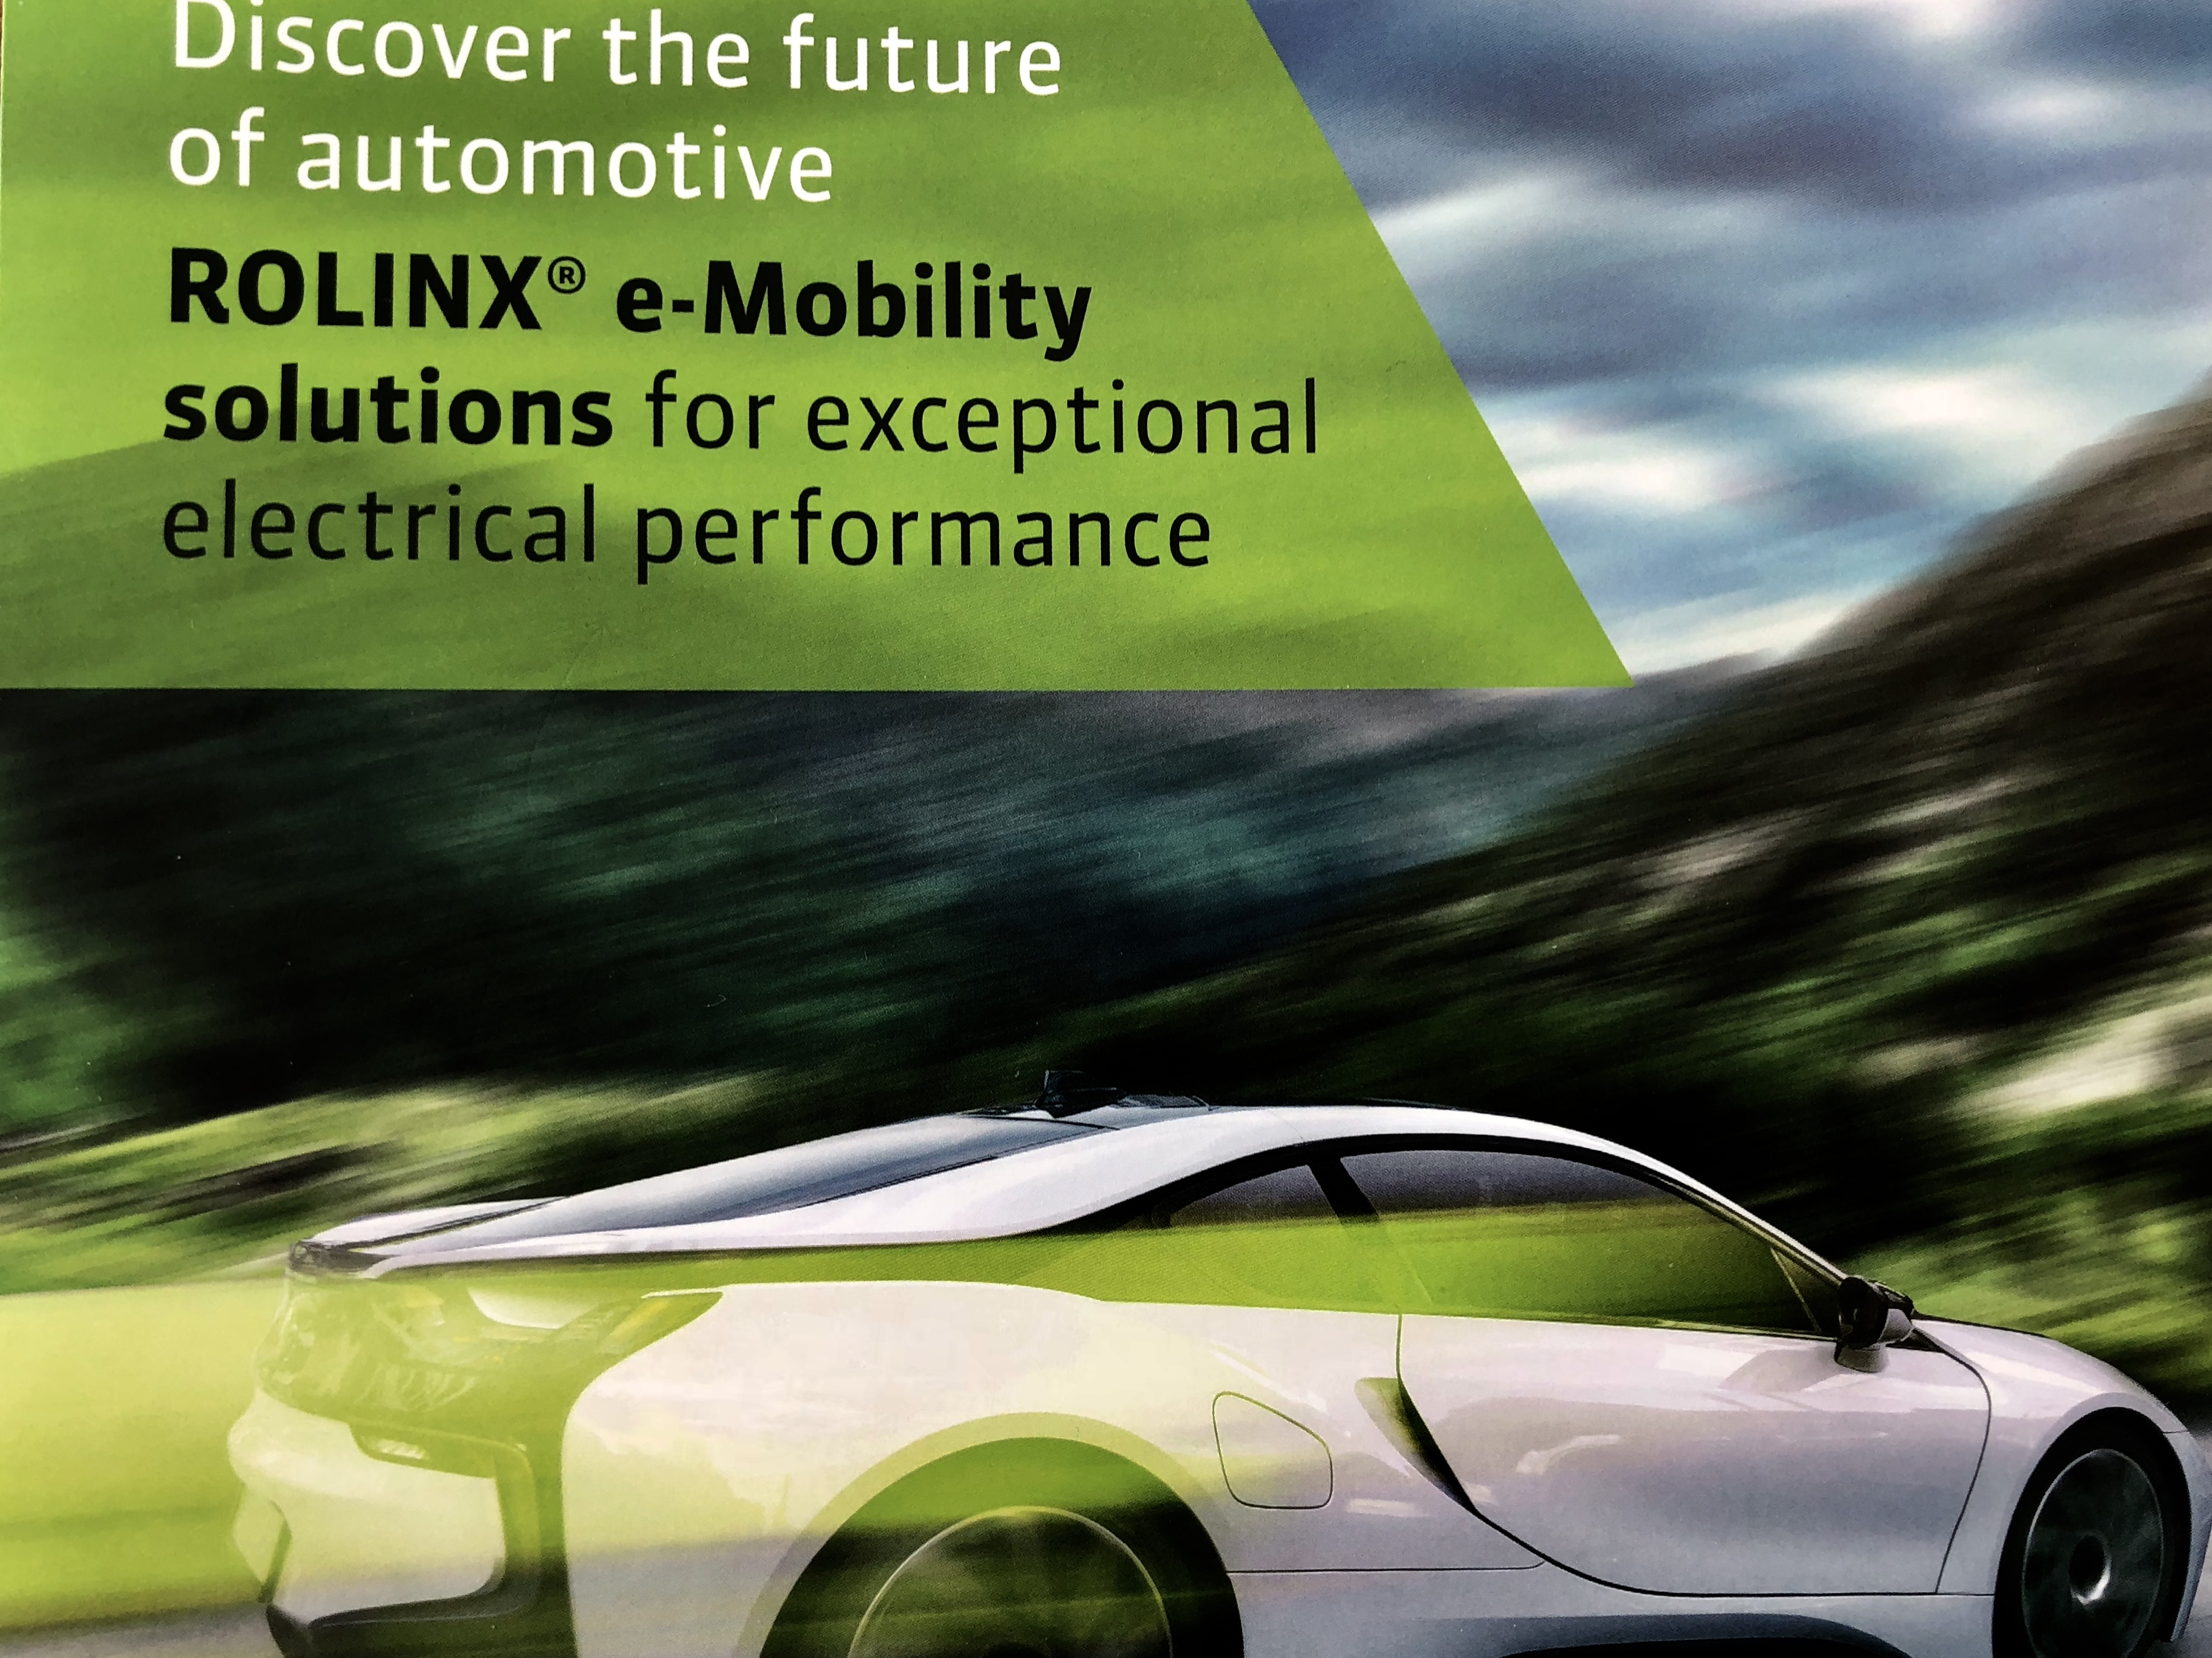 Rogers e-Mobility ROLINX Rogers® e-Mobility – discover future Rogers® e-Mobility – ROLNIX